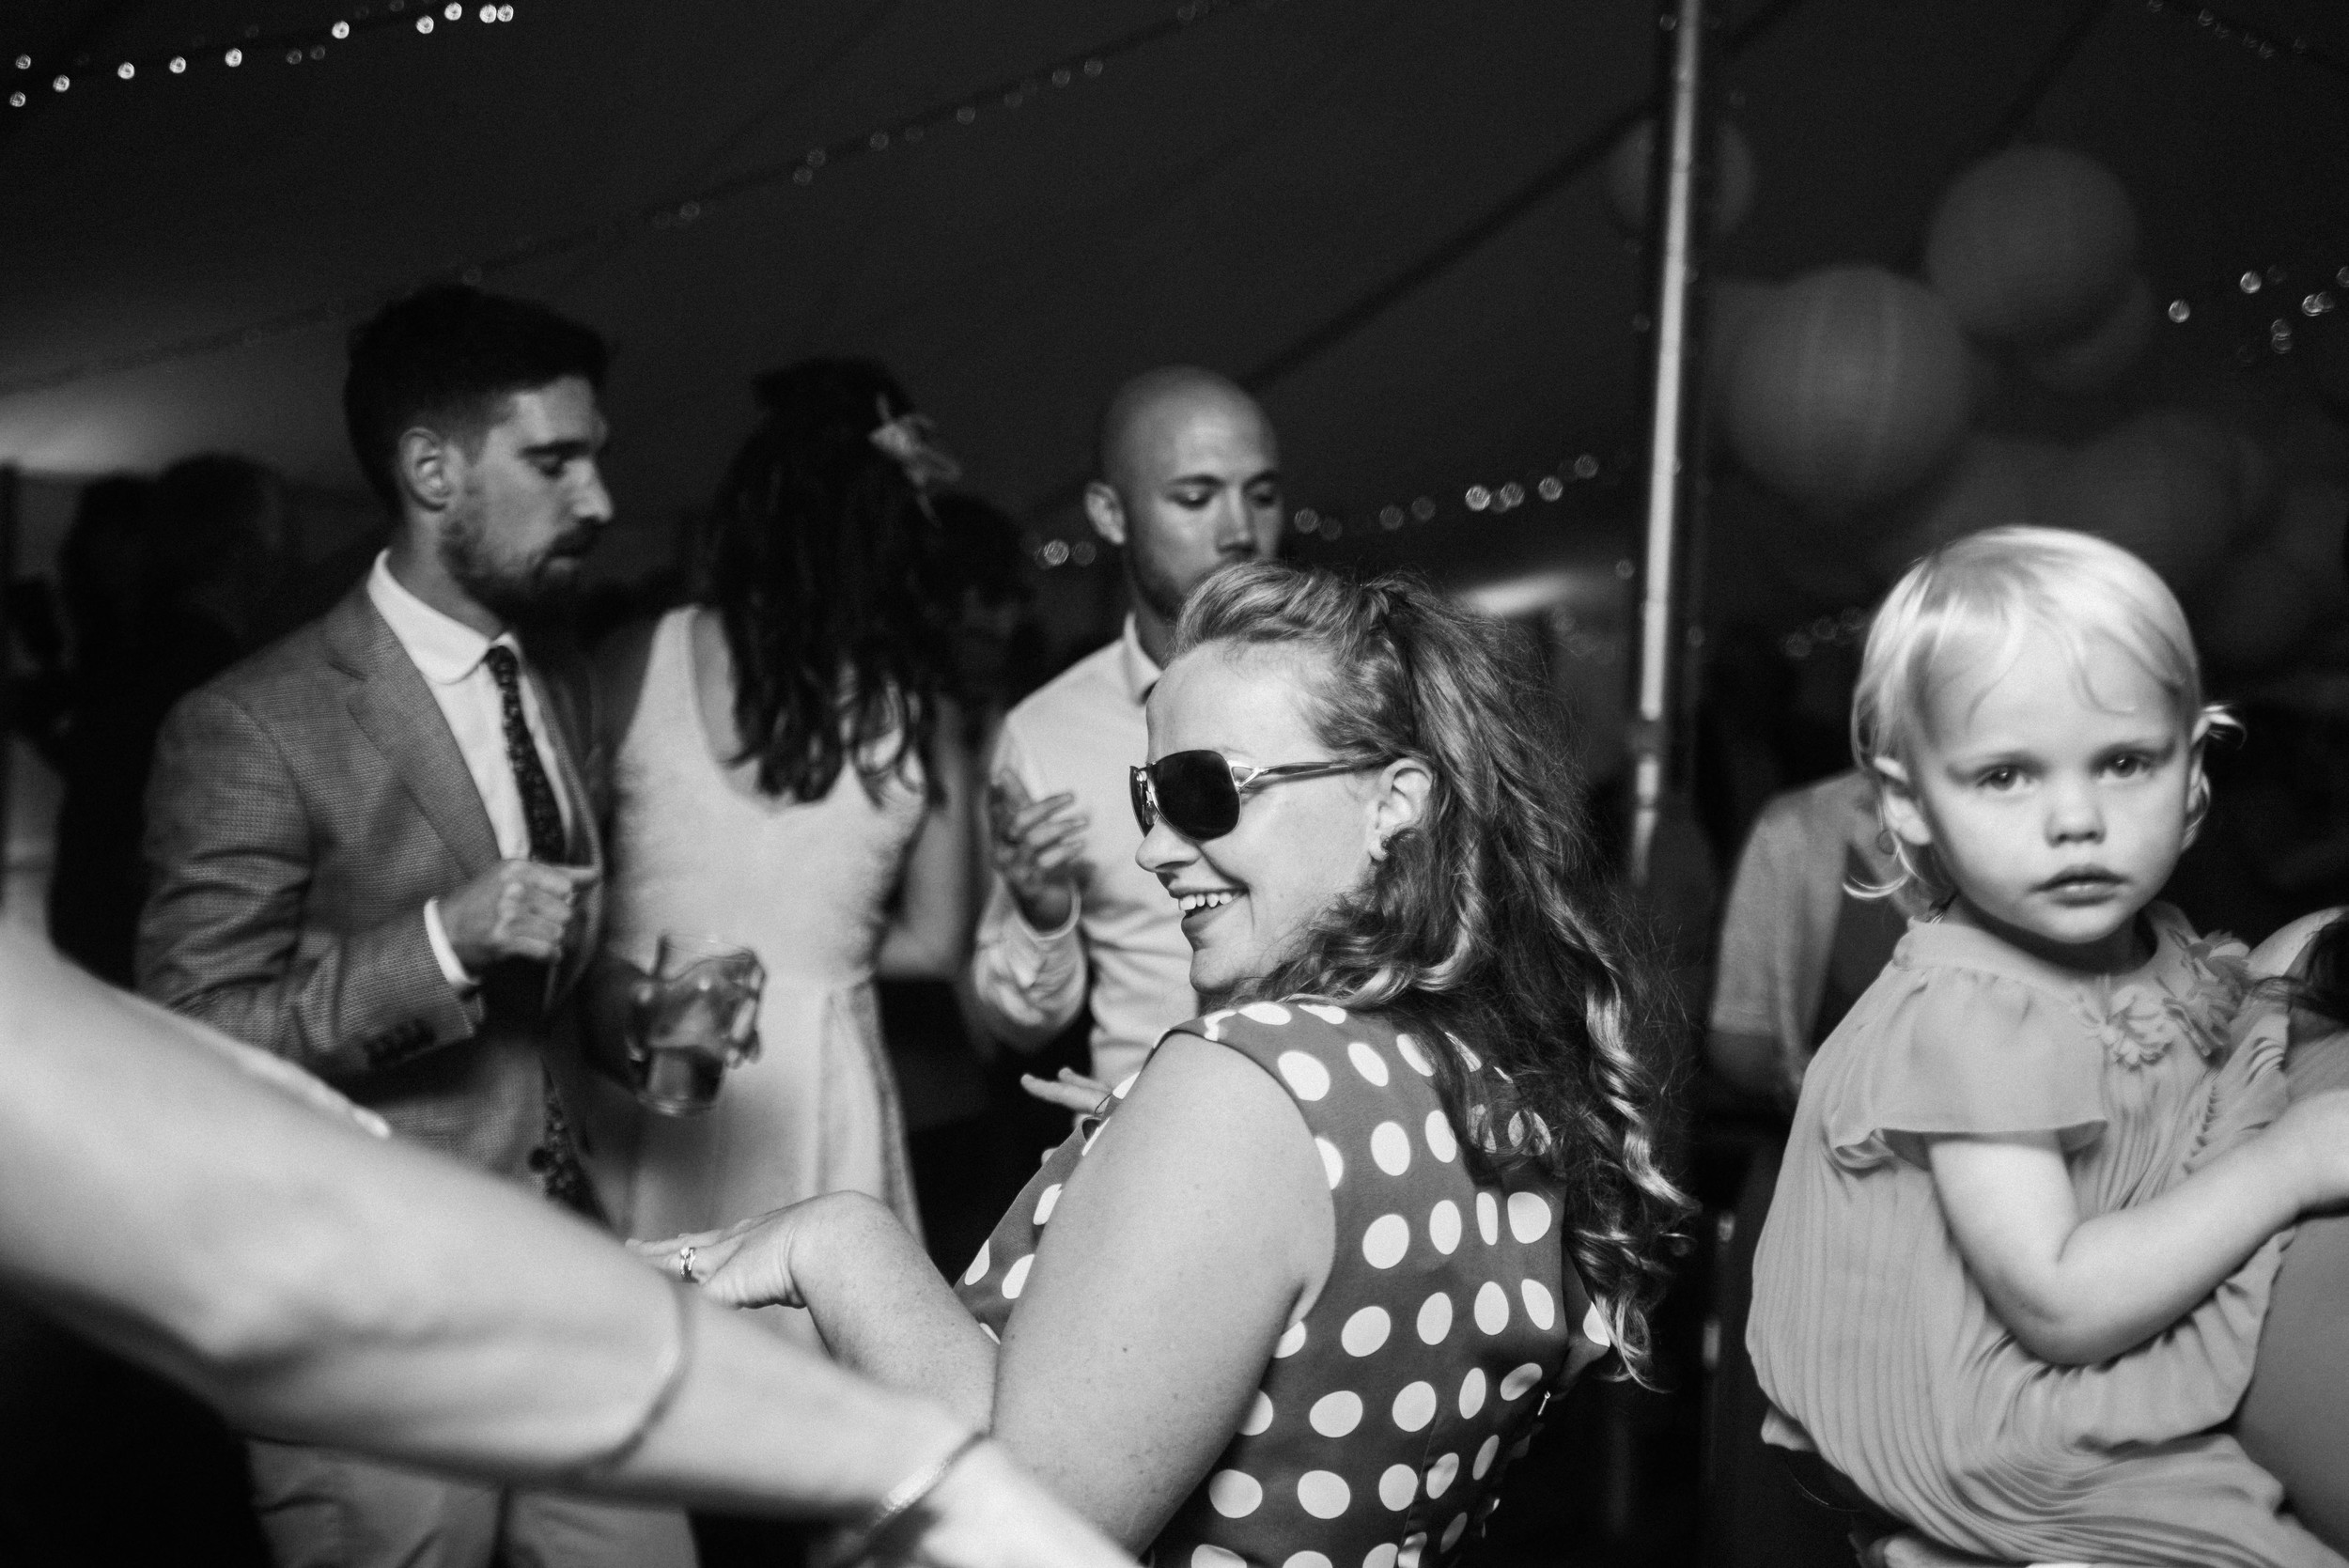 Guests on Dance Floor Cliff Barns Norfolk Essex UK Documentary Wedding Photographer